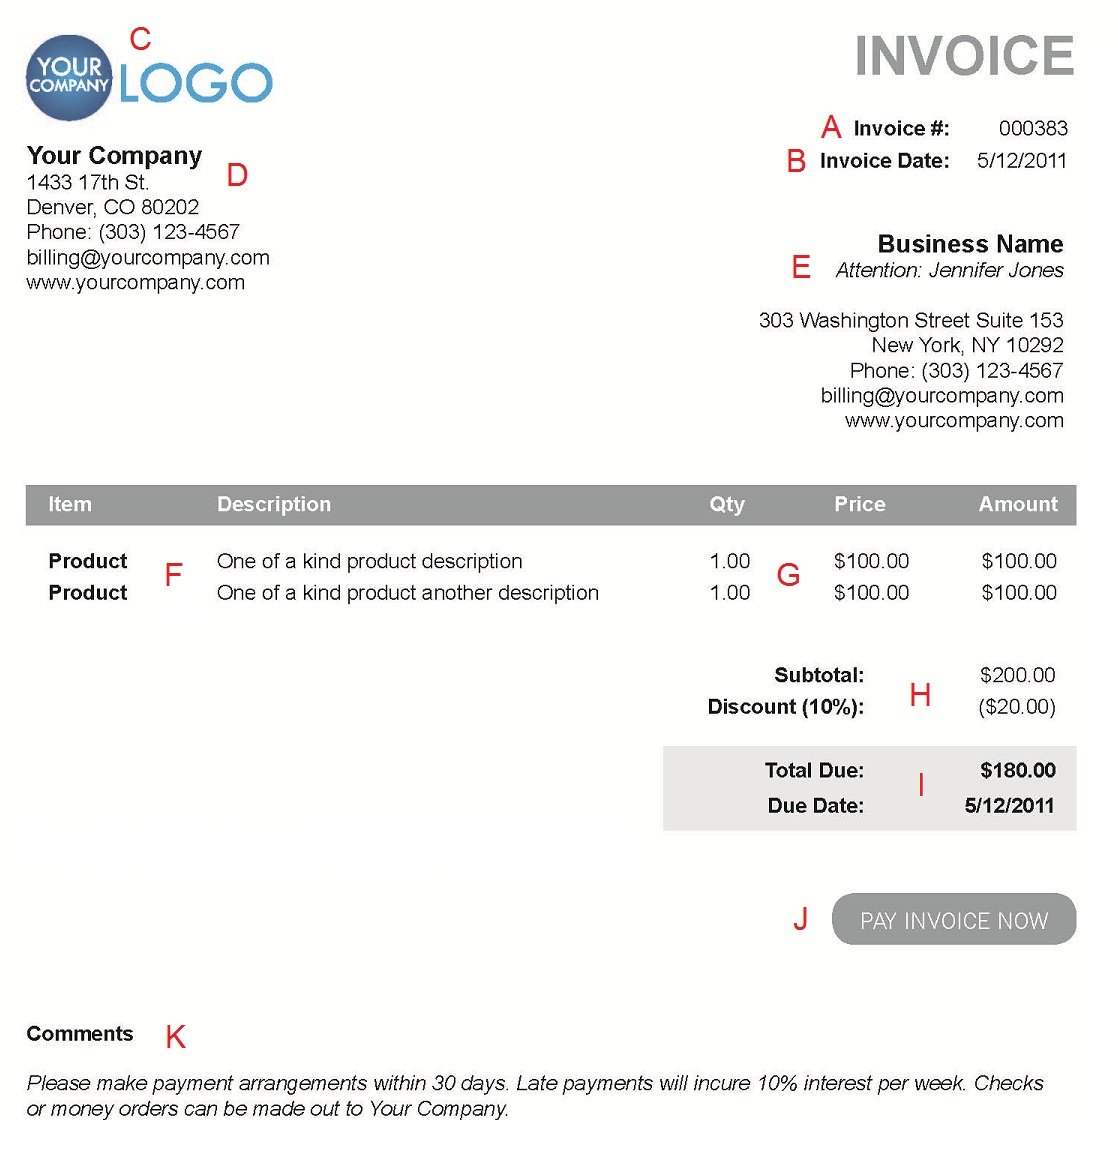 Bringjacobolivierhomeus  Ravishing The  Different Sections Of An Electronic Payment Invoice With Exciting A  With Endearing Receipt Confirmation Email Also Labor Receipt Template In Addition Receipts Holder And Safekeeping Receipt As Well As Receipts App For Iphone Additionally Credit Card Receipts Template From Paysimplecom With Bringjacobolivierhomeus  Exciting The  Different Sections Of An Electronic Payment Invoice With Endearing A  And Ravishing Receipt Confirmation Email Also Labor Receipt Template In Addition Receipts Holder From Paysimplecom